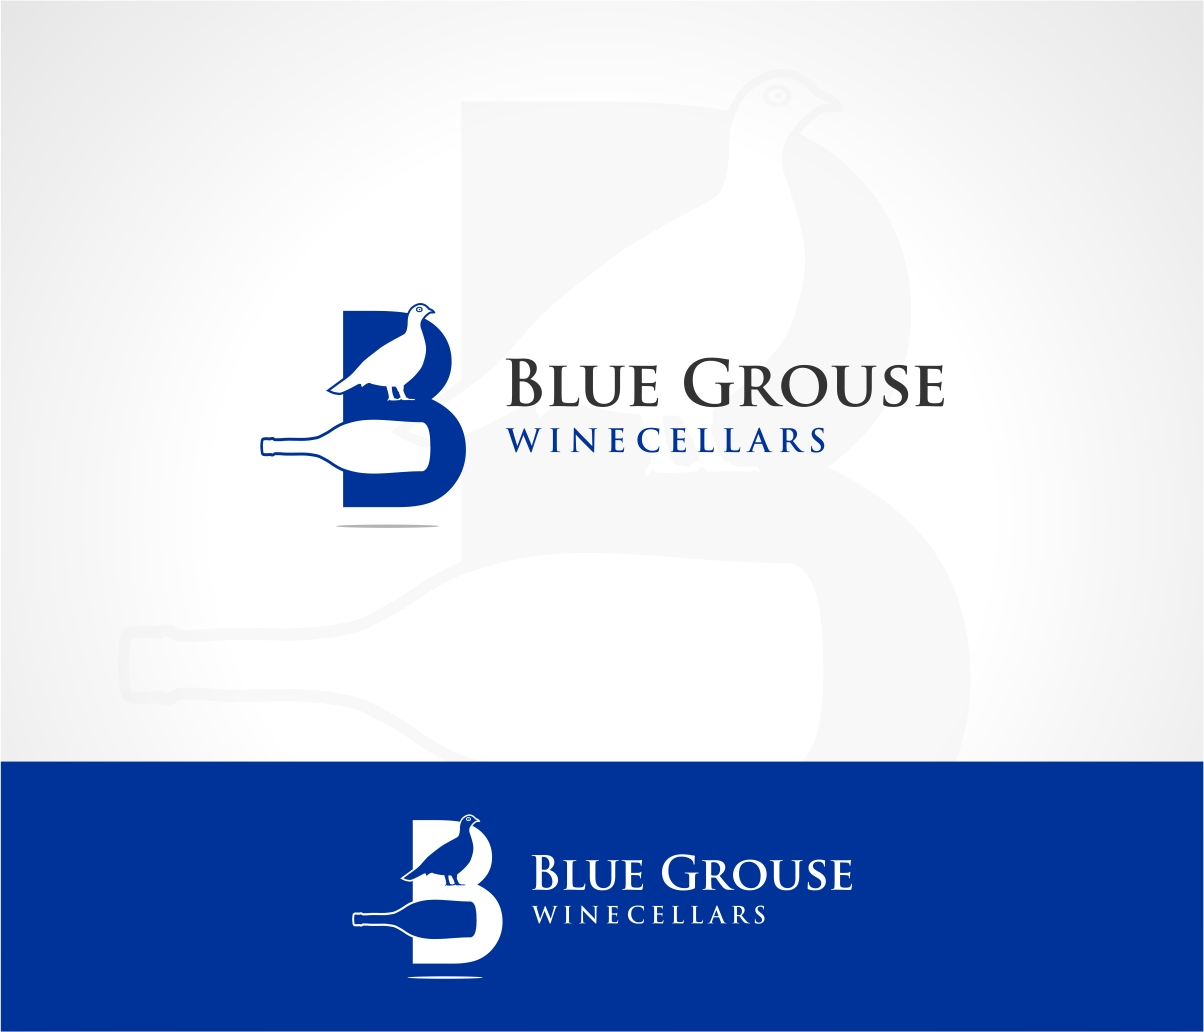 Logo Design by haidu - Entry No. 122 in the Logo Design Contest Creative Logo Design for Blue Grouse Wine Cellars.